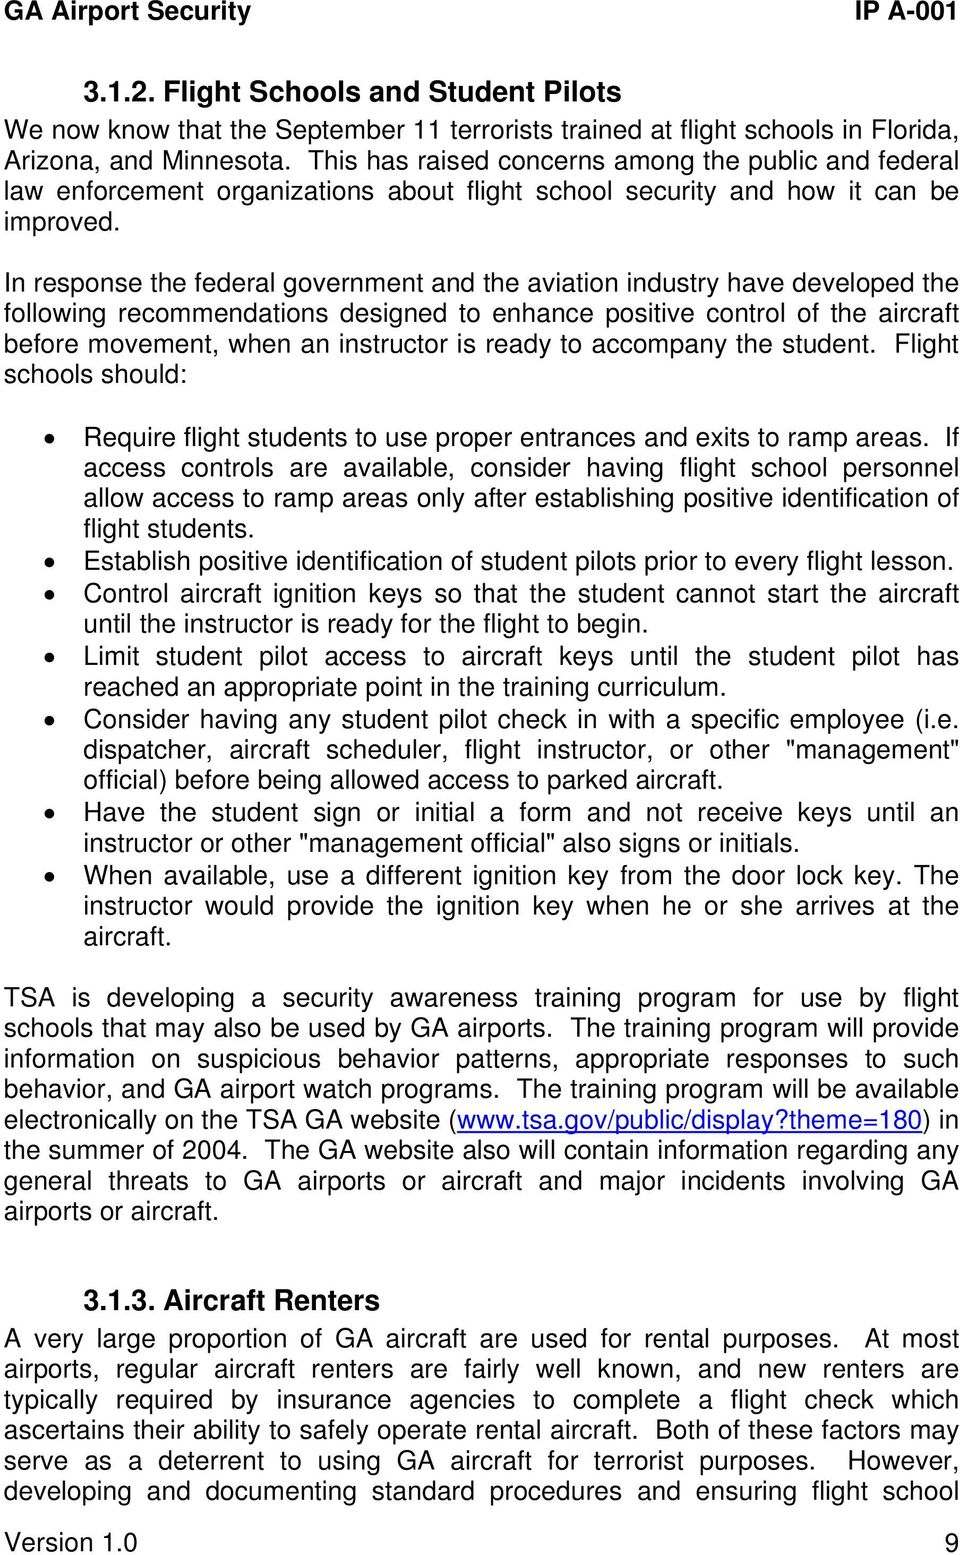 In response the federal government and the aviation industry have developed the following recommendations designed to enhance positive control of the aircraft before movement, when an instructor is